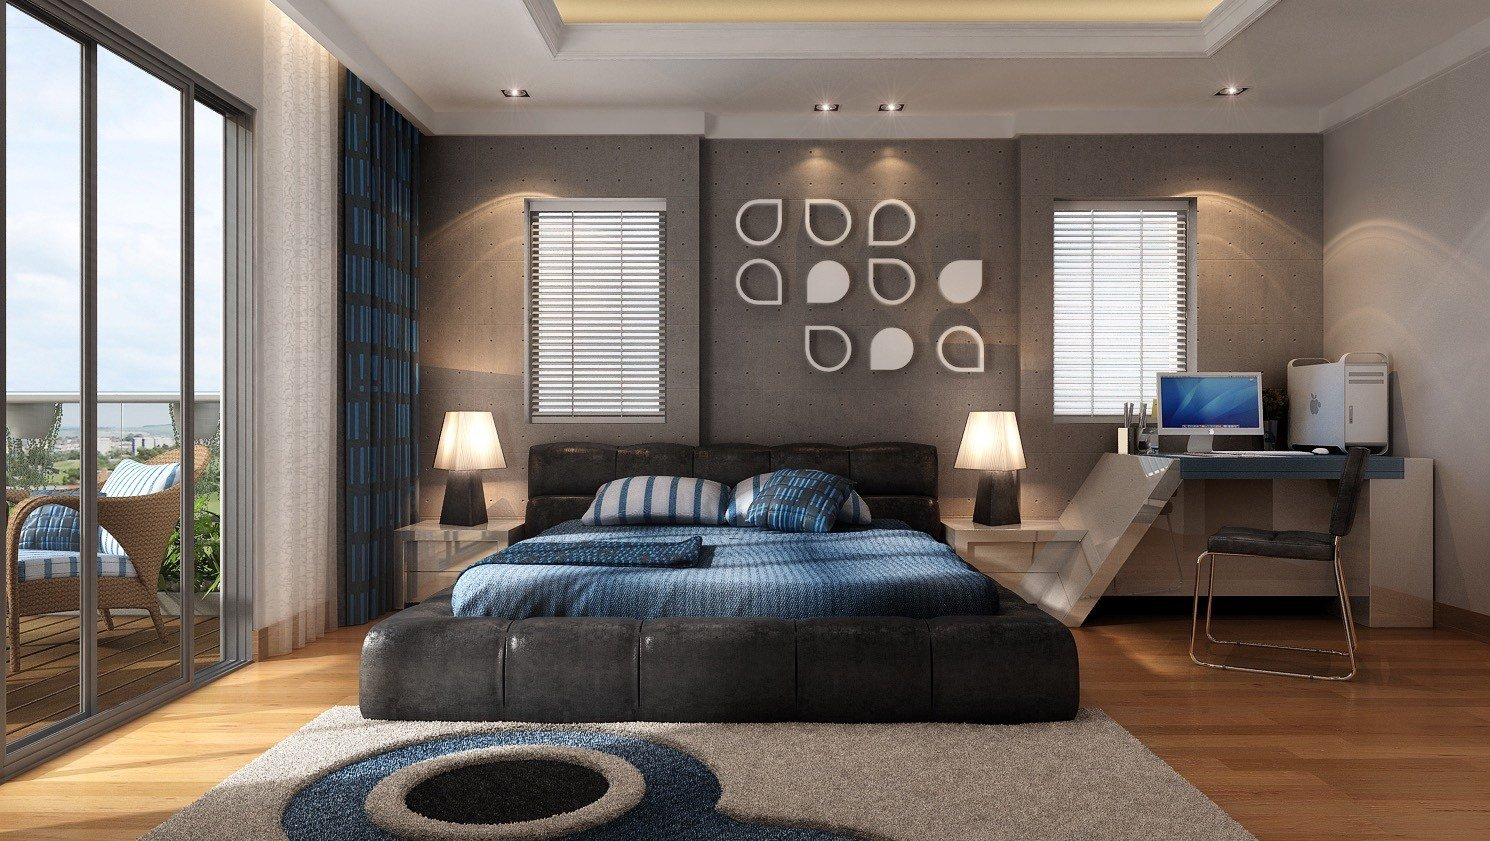 Best 21 Cool Bedrooms For Clean And Simple Design Inspiration With Pictures